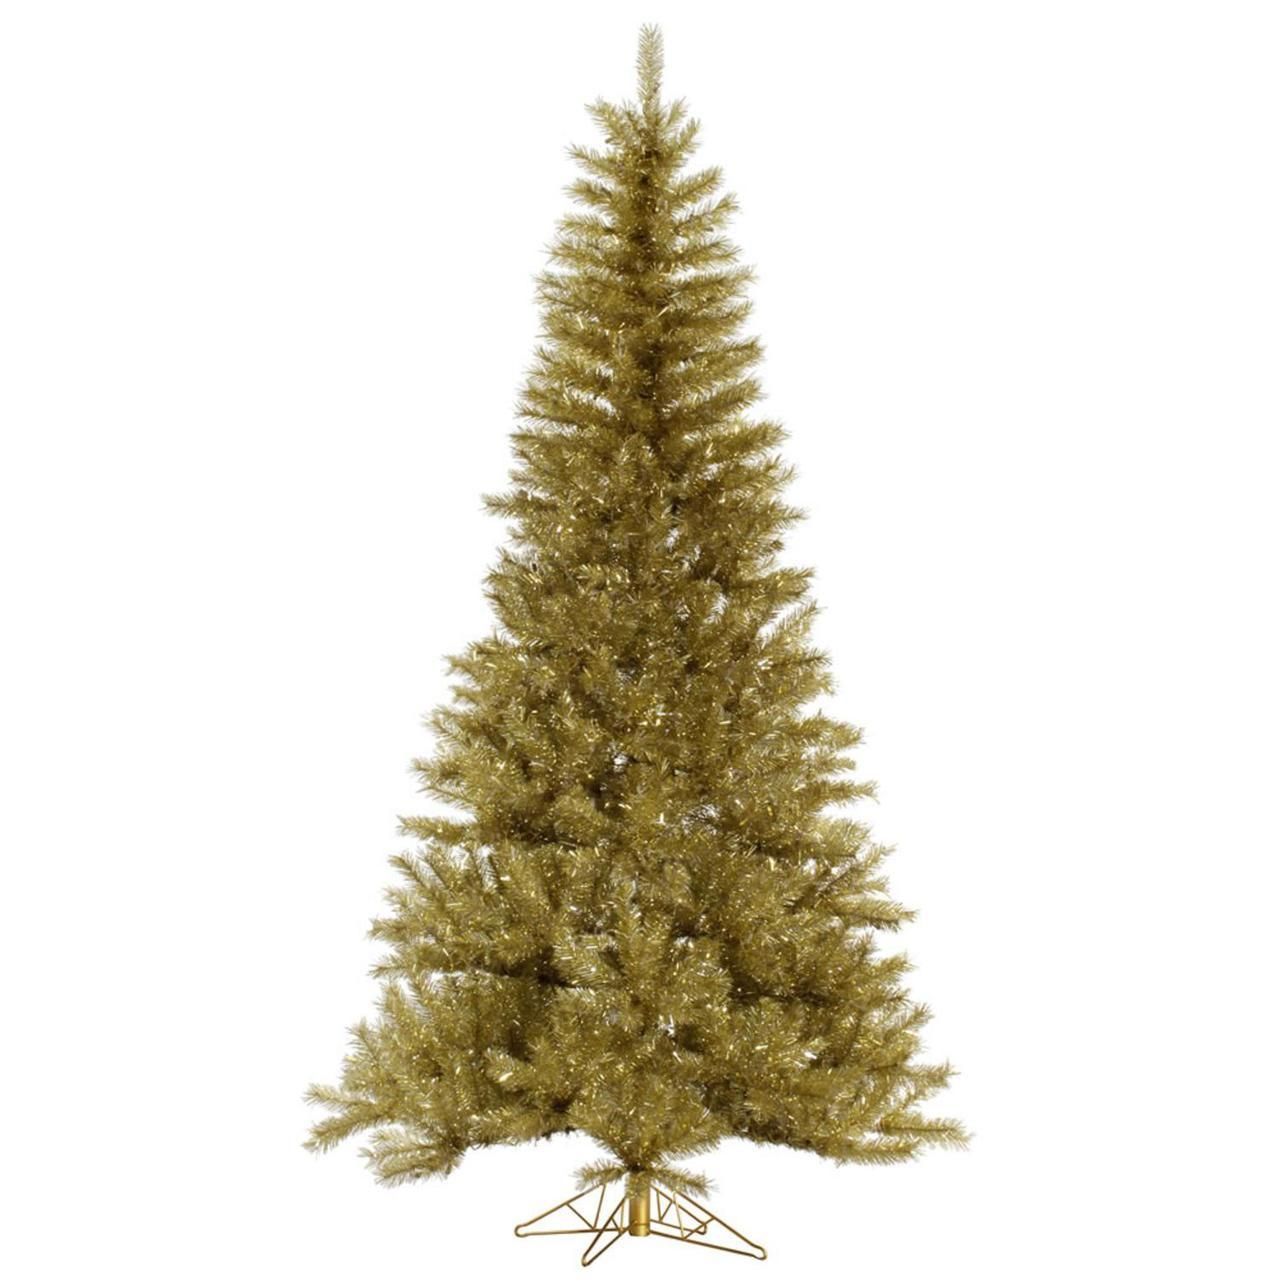 10' Champagne Gold and Silver Tinsel Artificial Christmas Tree - Unlit 31344069 | ChristmasCentral